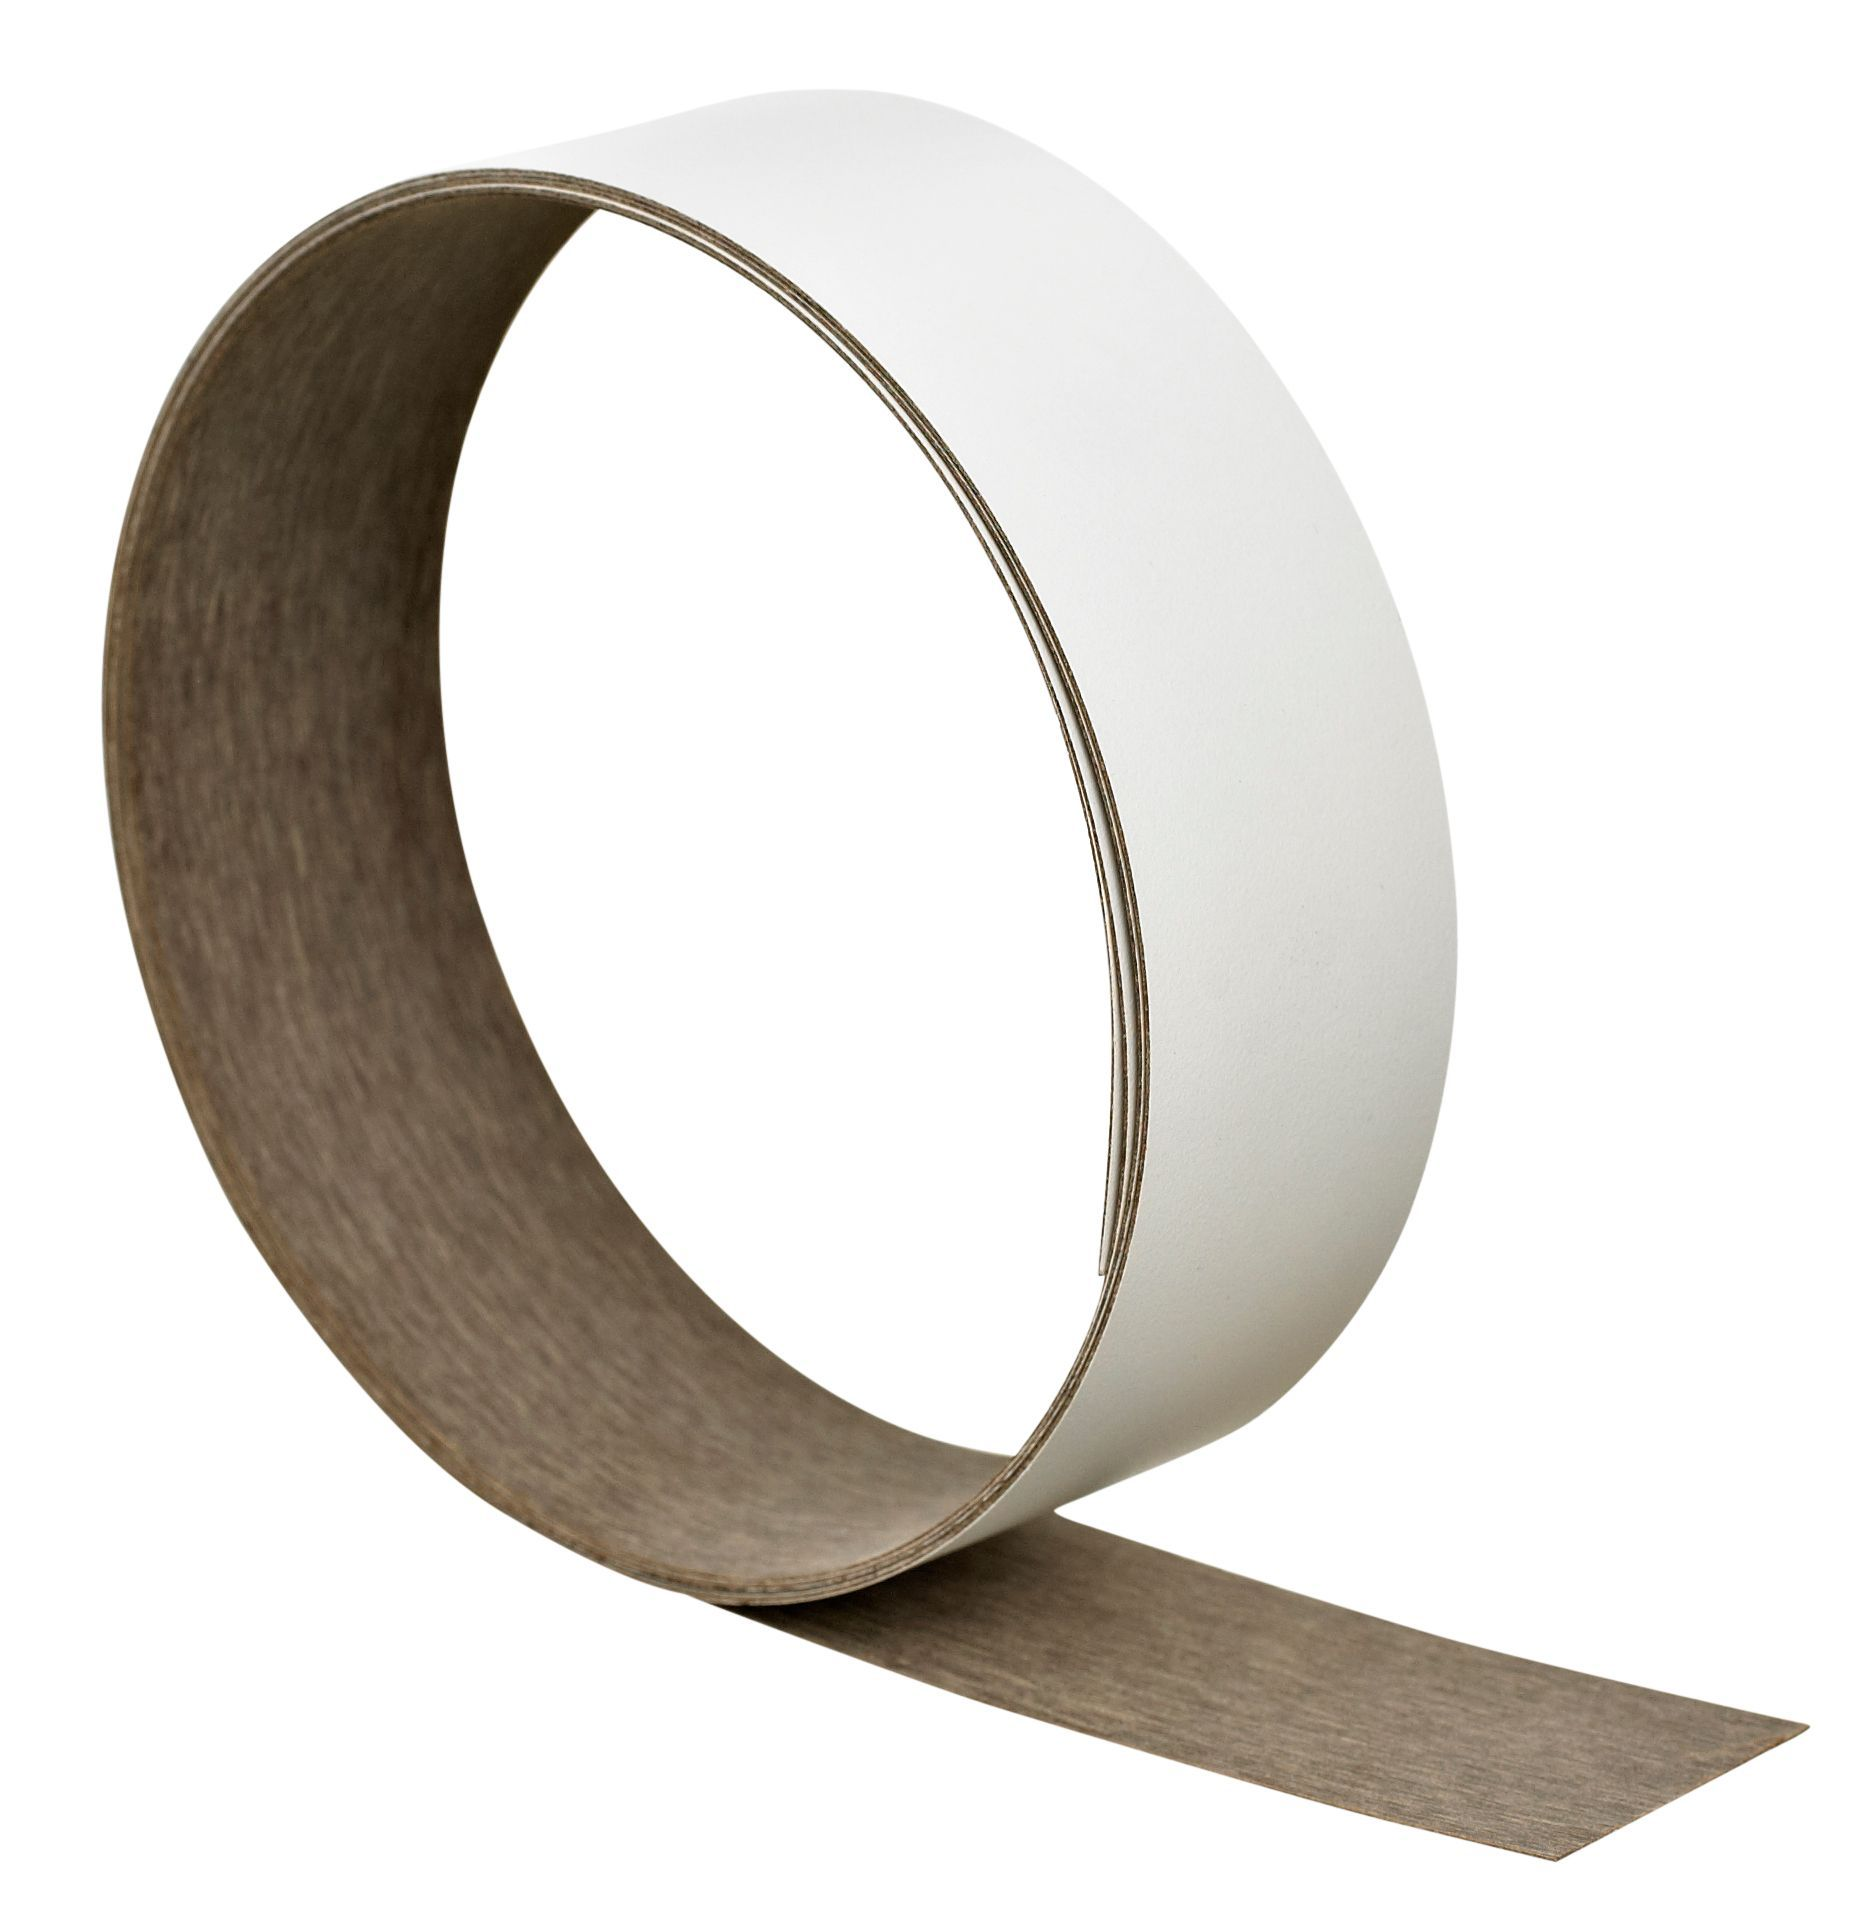 B Amp Q Matt White Worktop Edging Tape L 3000mm Departments